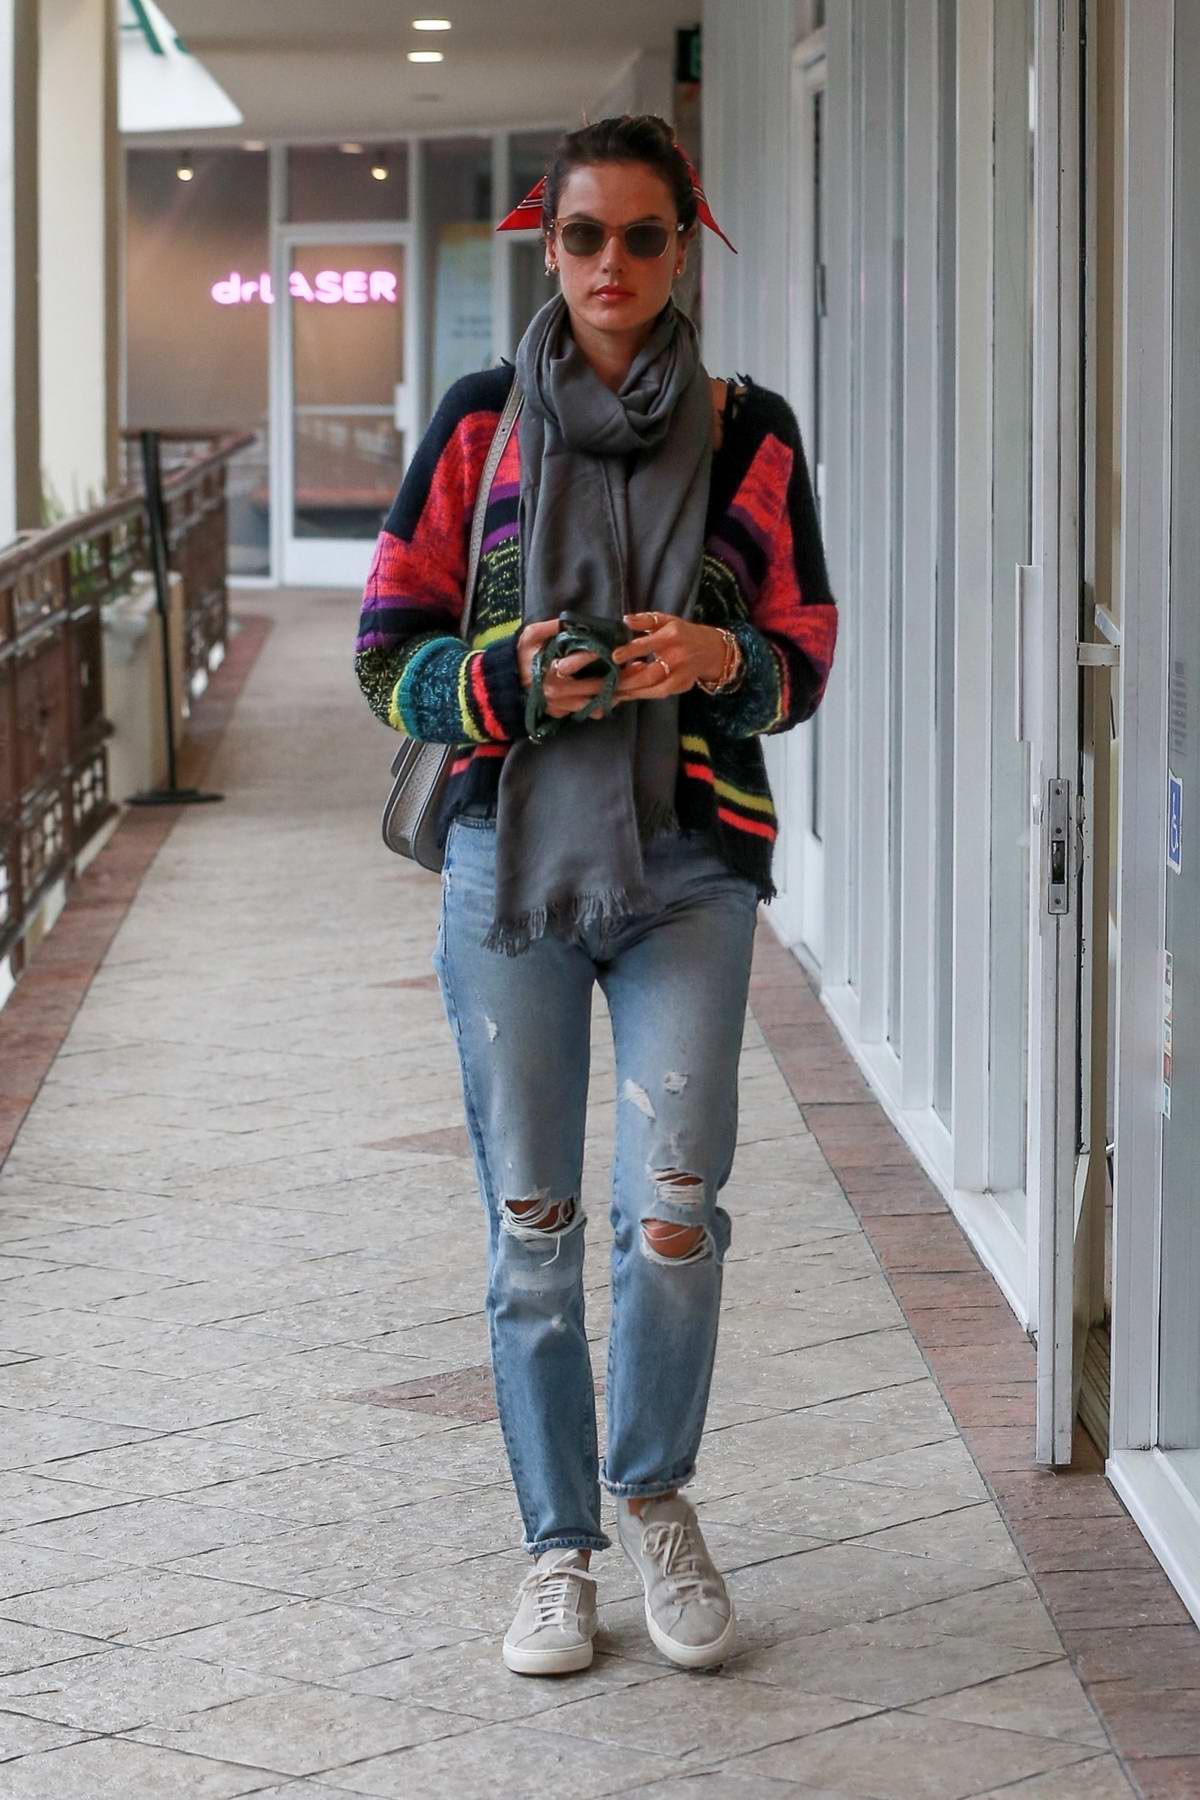 Alessandra Ambrosio steps out for lunch at Sushi Park in West Hollywood, California